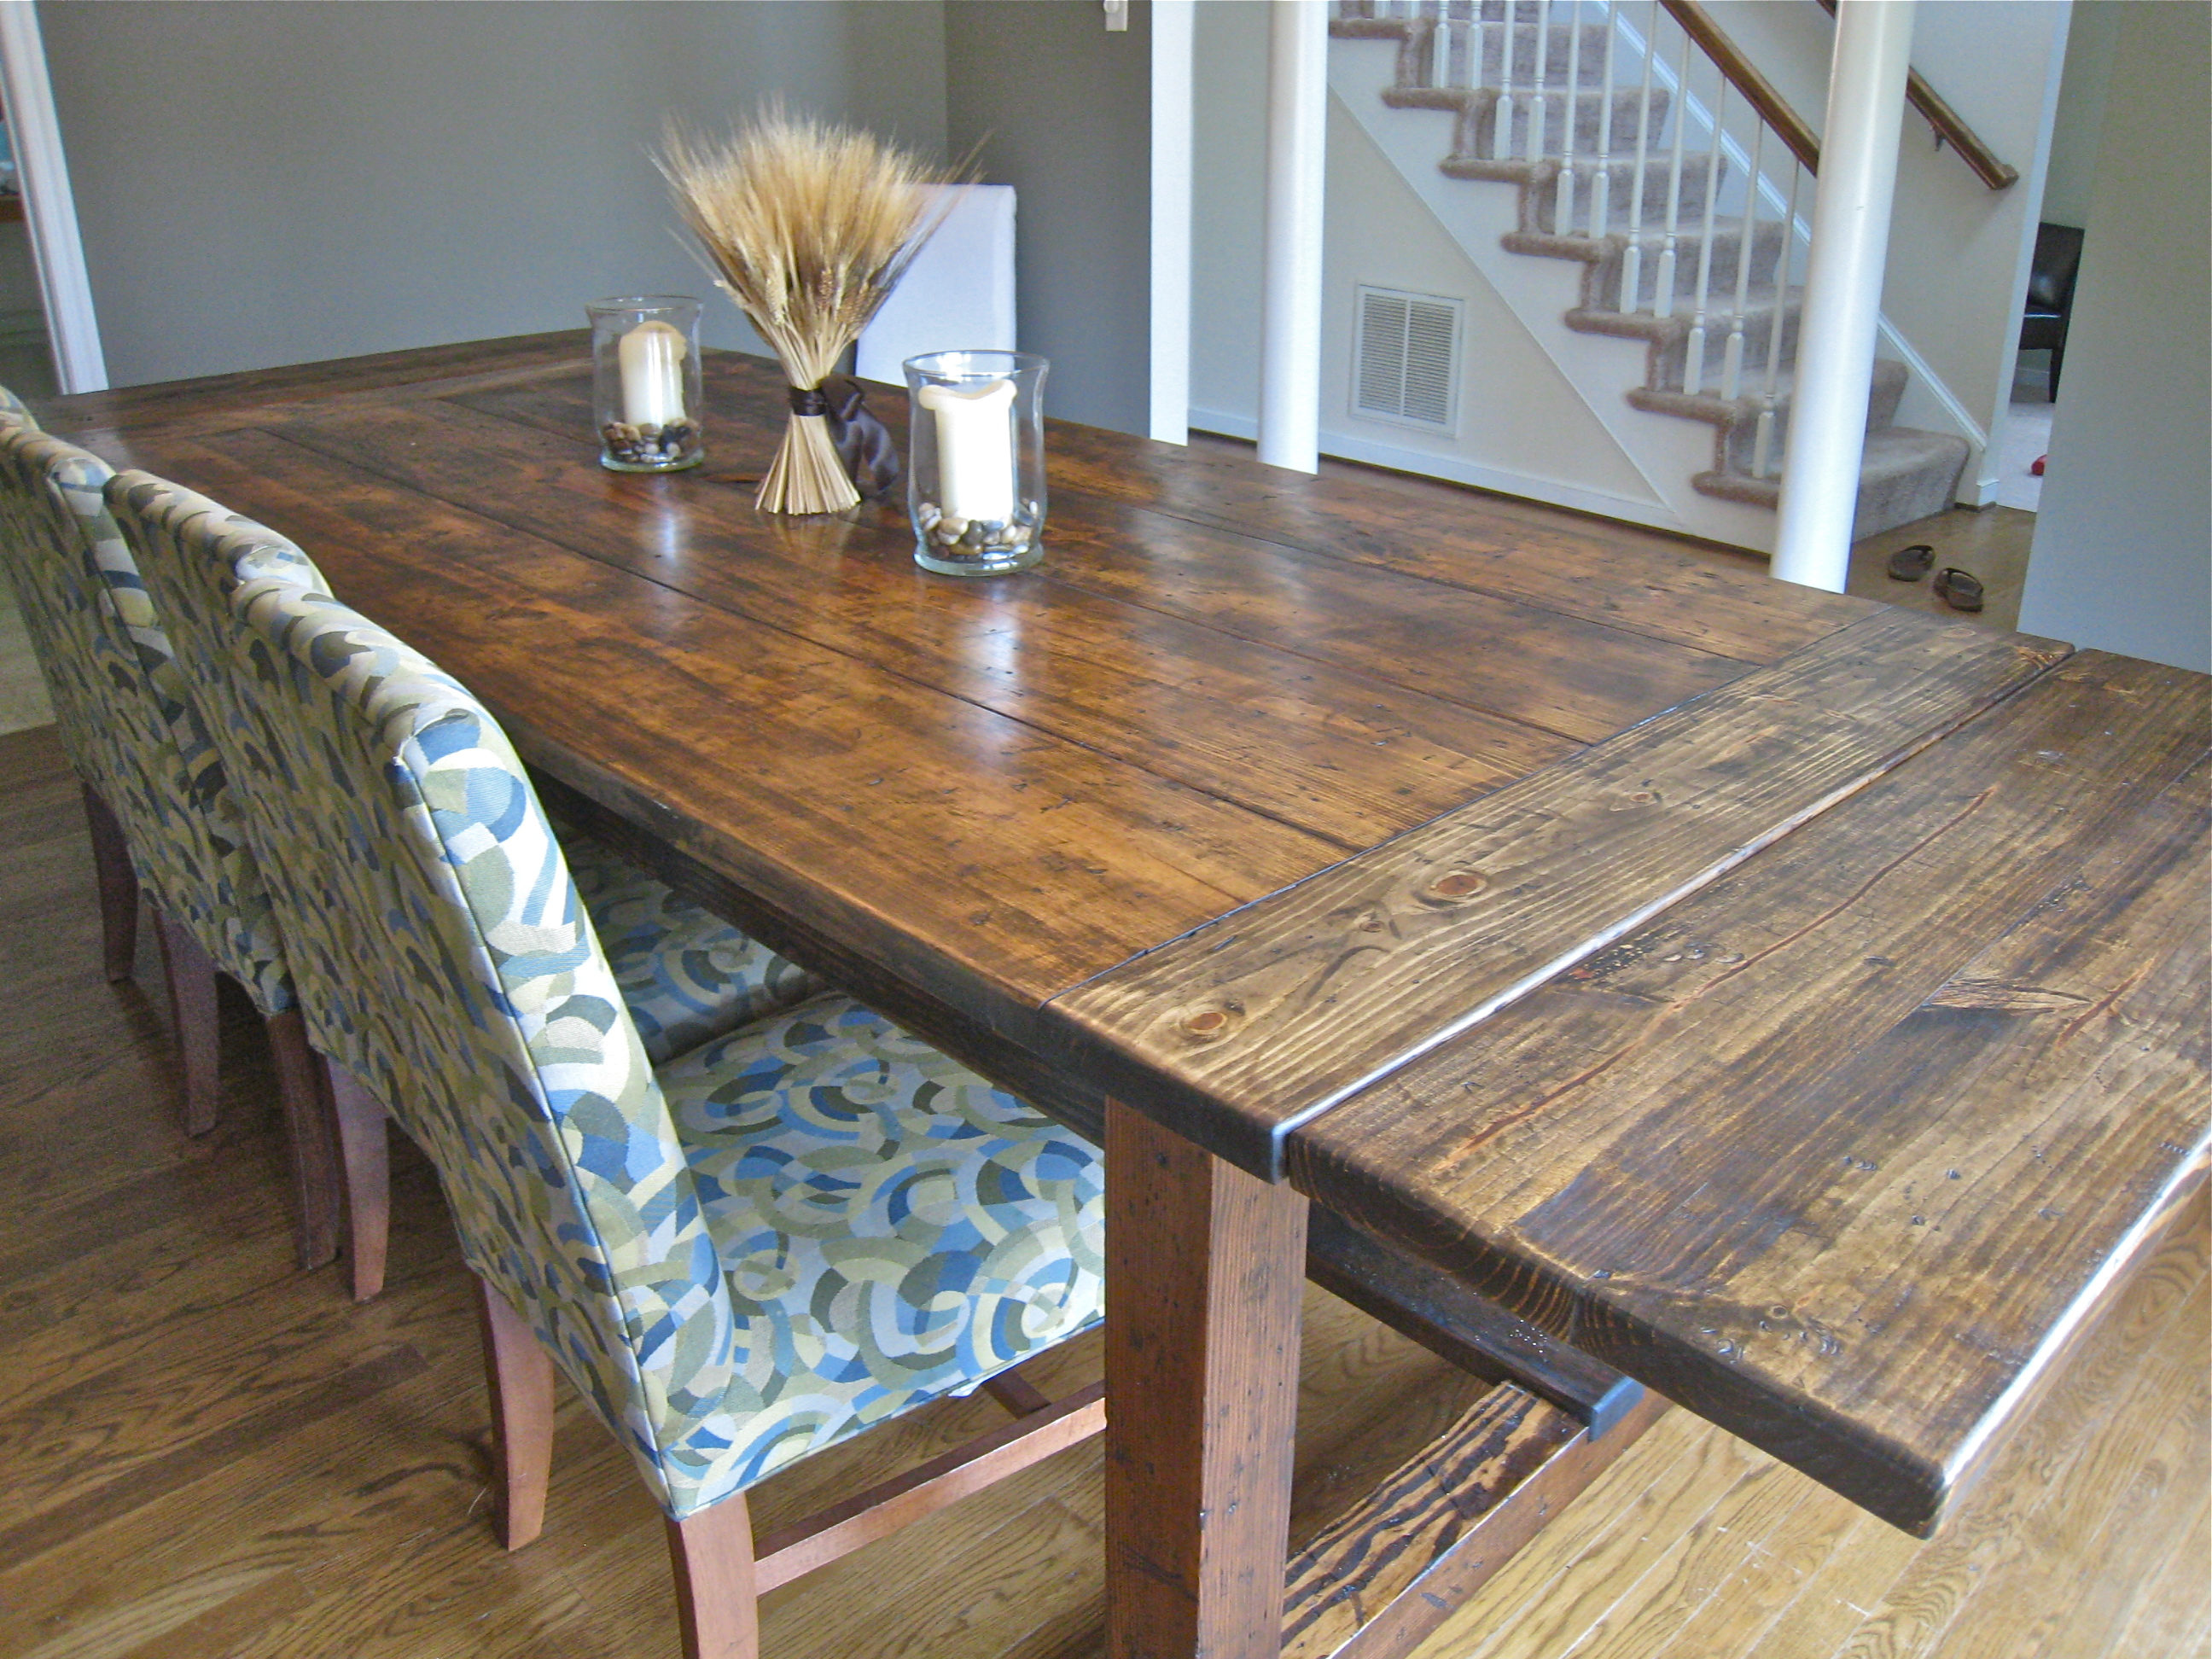 Dining Room Table Plans With Leaves Unique Farmhouse Table Details « Tommy & Ellie Inspiration Design